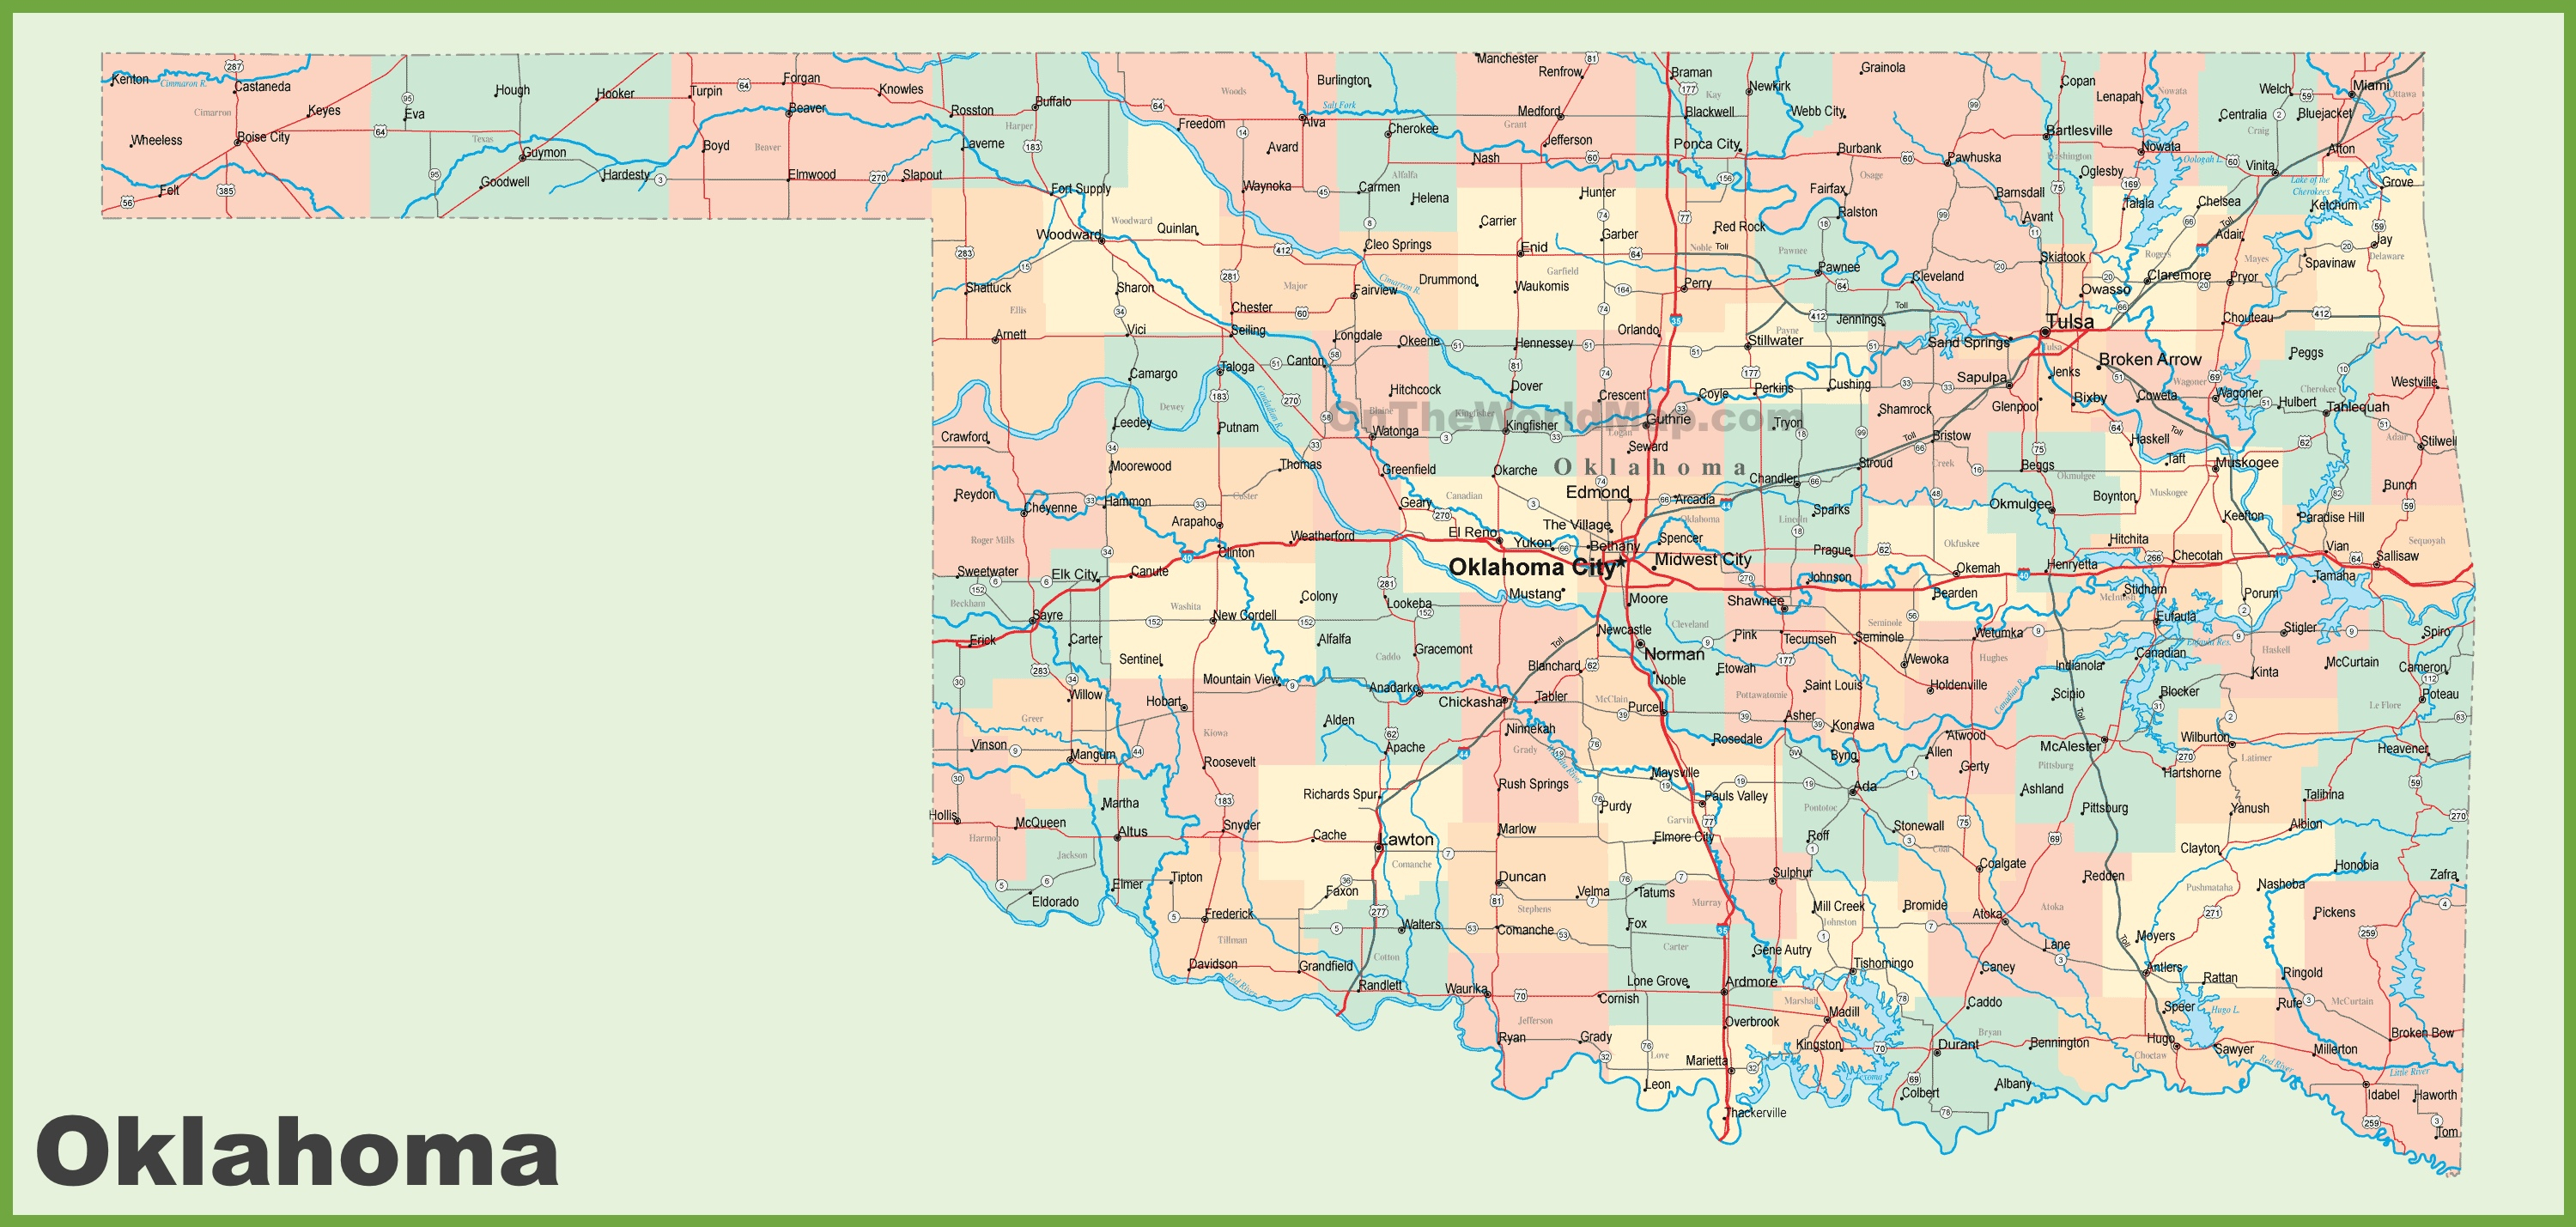 Road Map Of Oklahoma With Cities - Map Of North Texas And Oklahoma